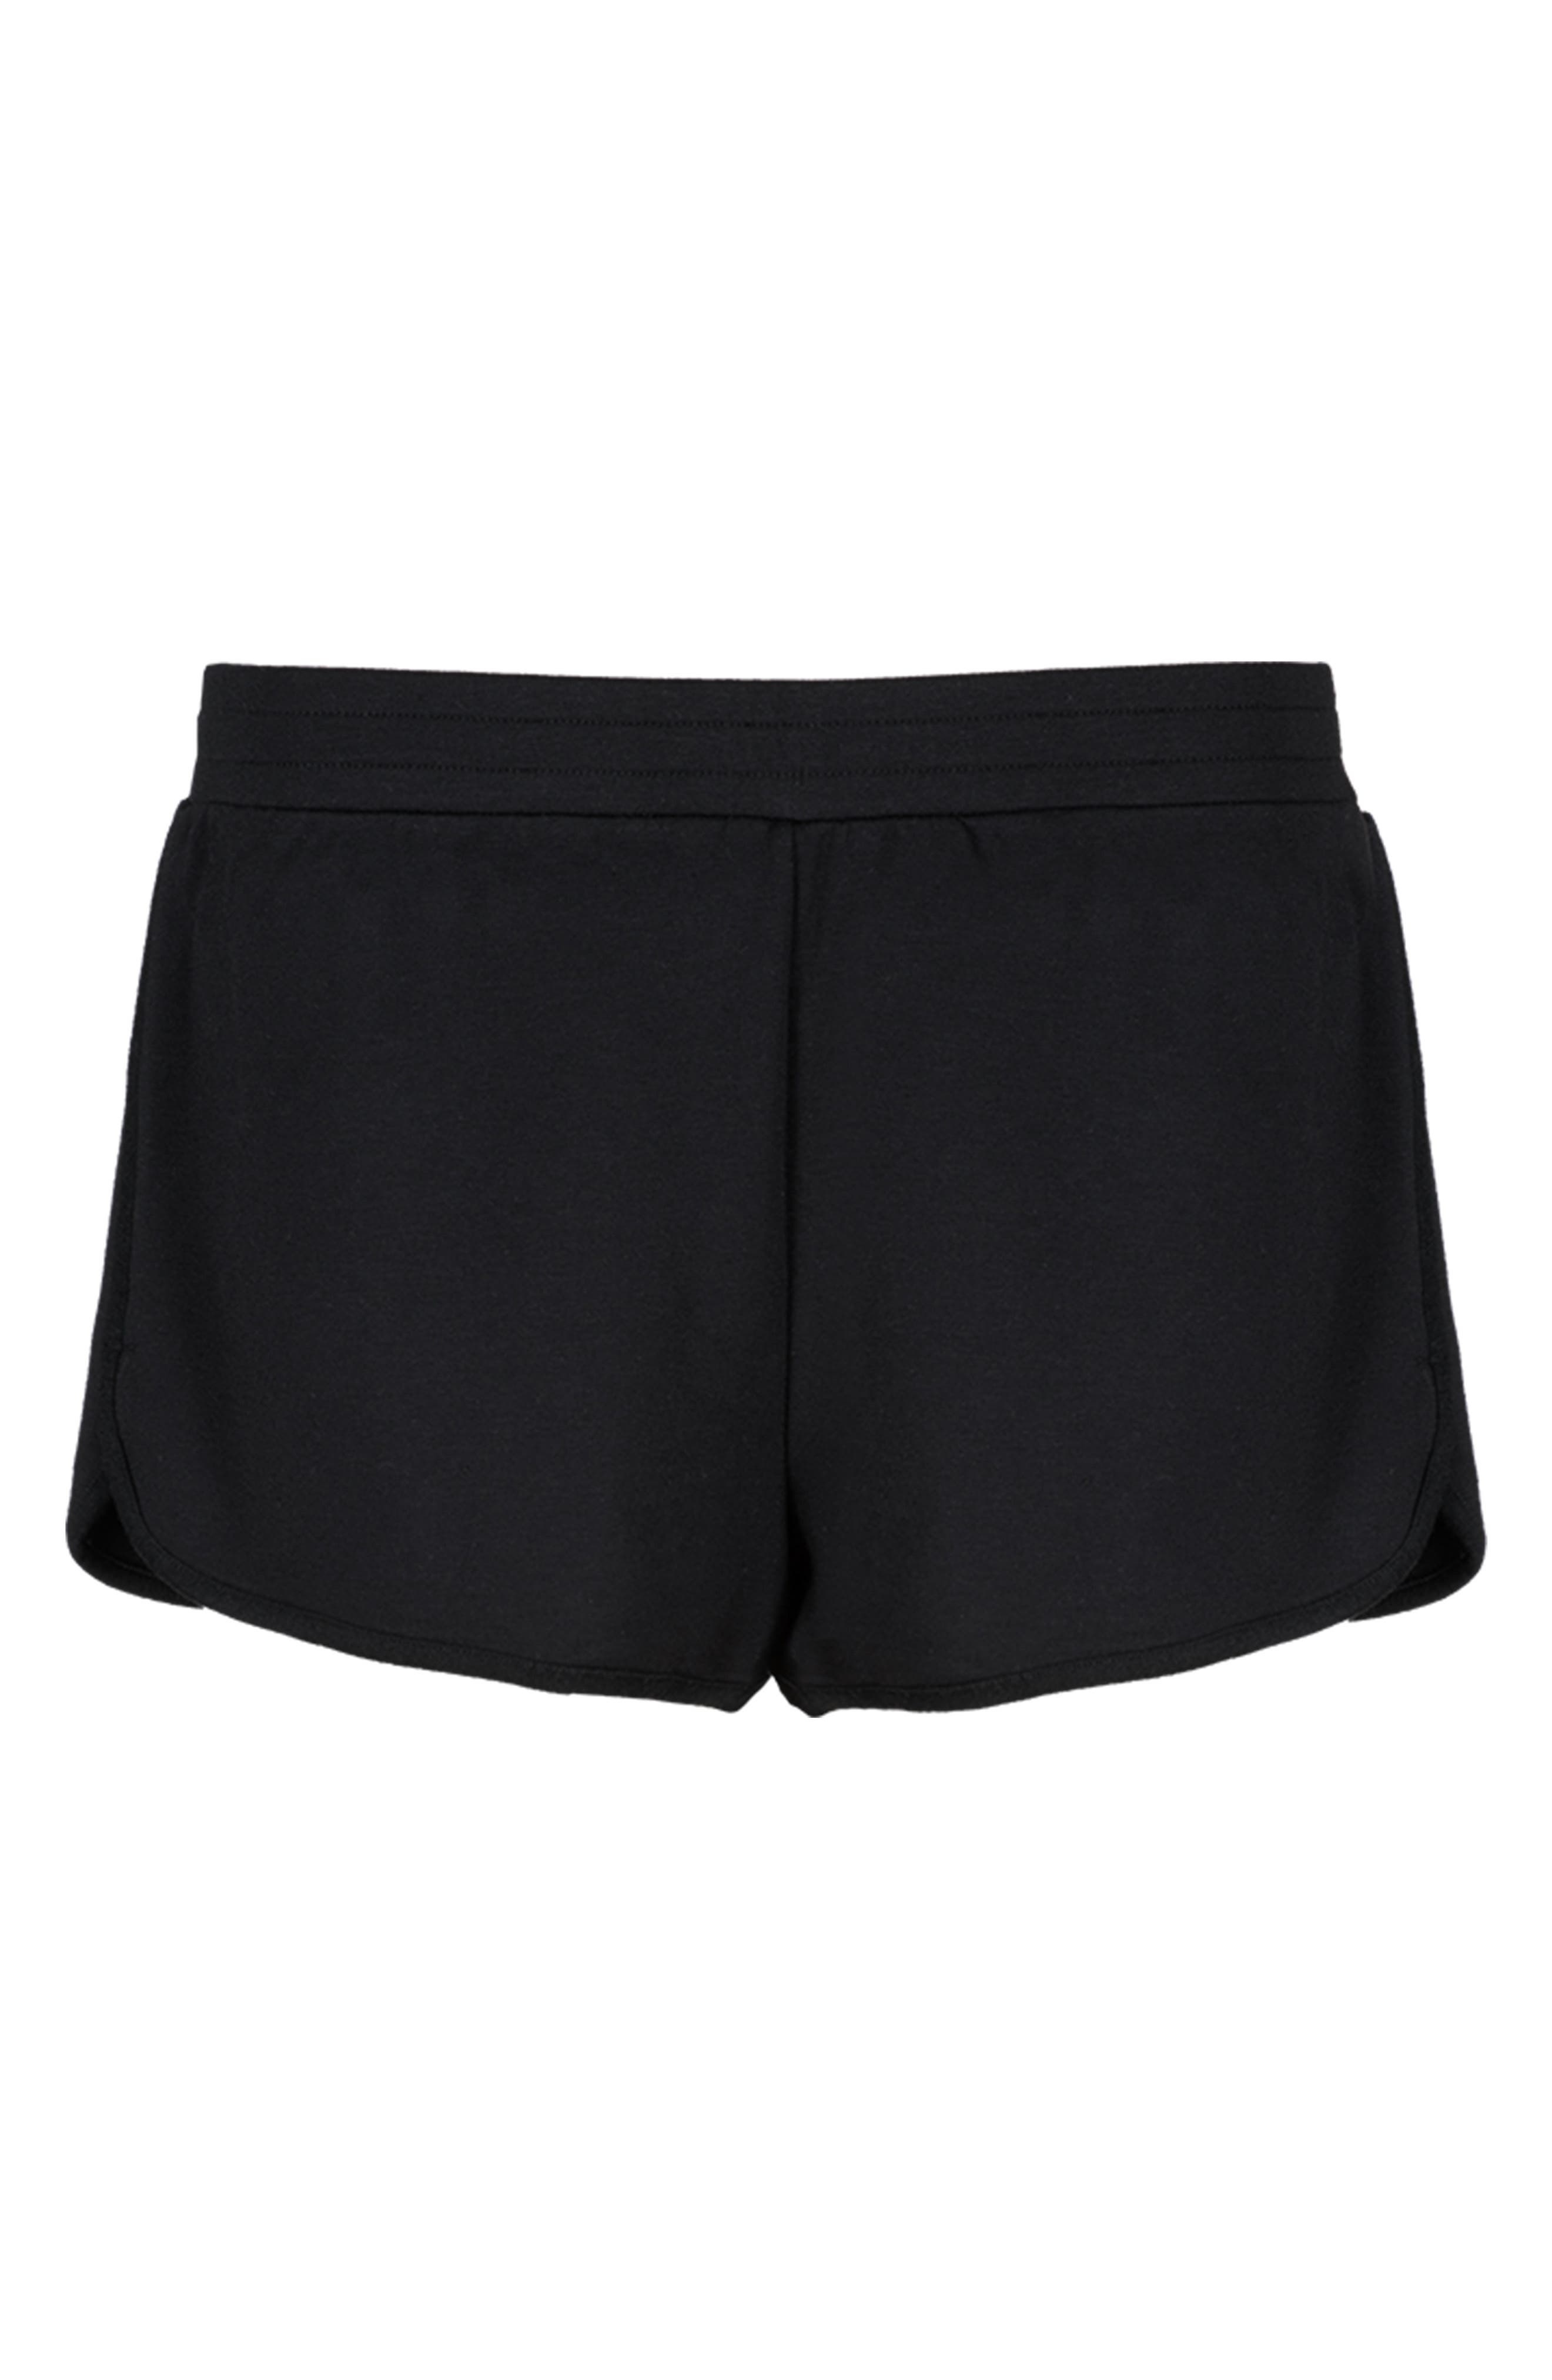 The Terry Women's Lounge Shorts